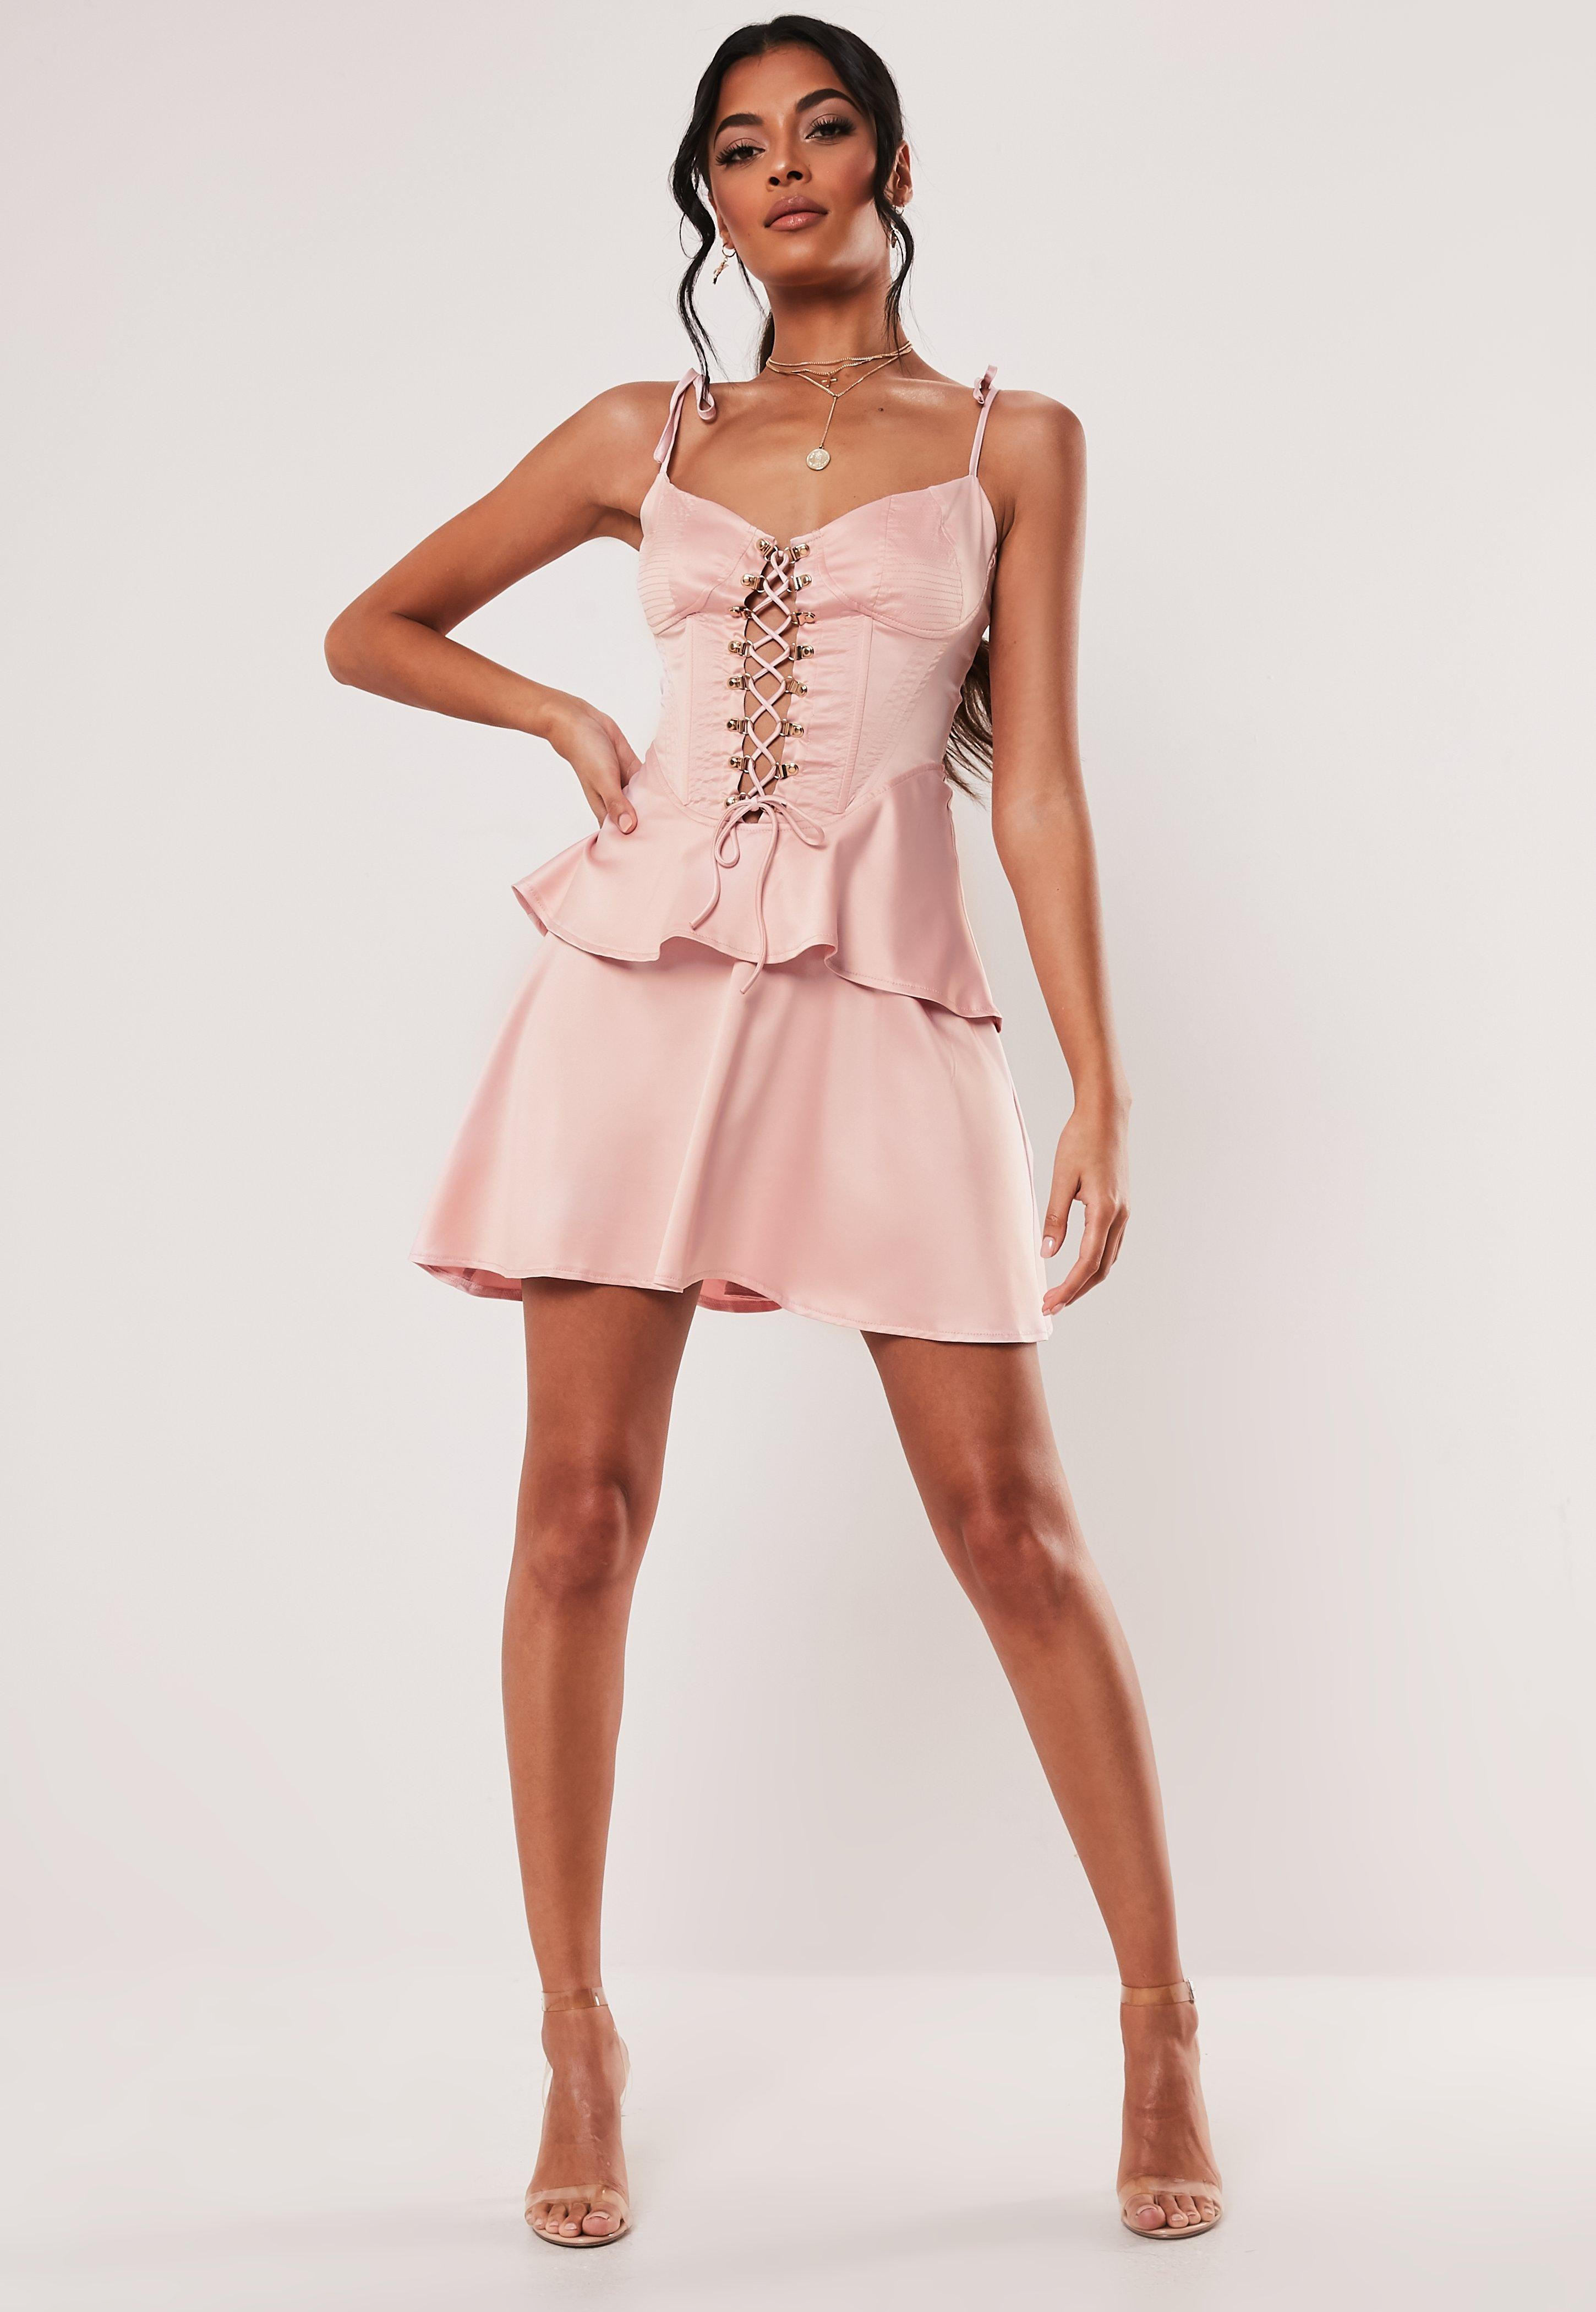 PatineuseAchat Robe Femme Missguided Robe Femme Missguided Robe Femme PatineuseAchat PatineuseAchat Missguided Robe xrBoedWC